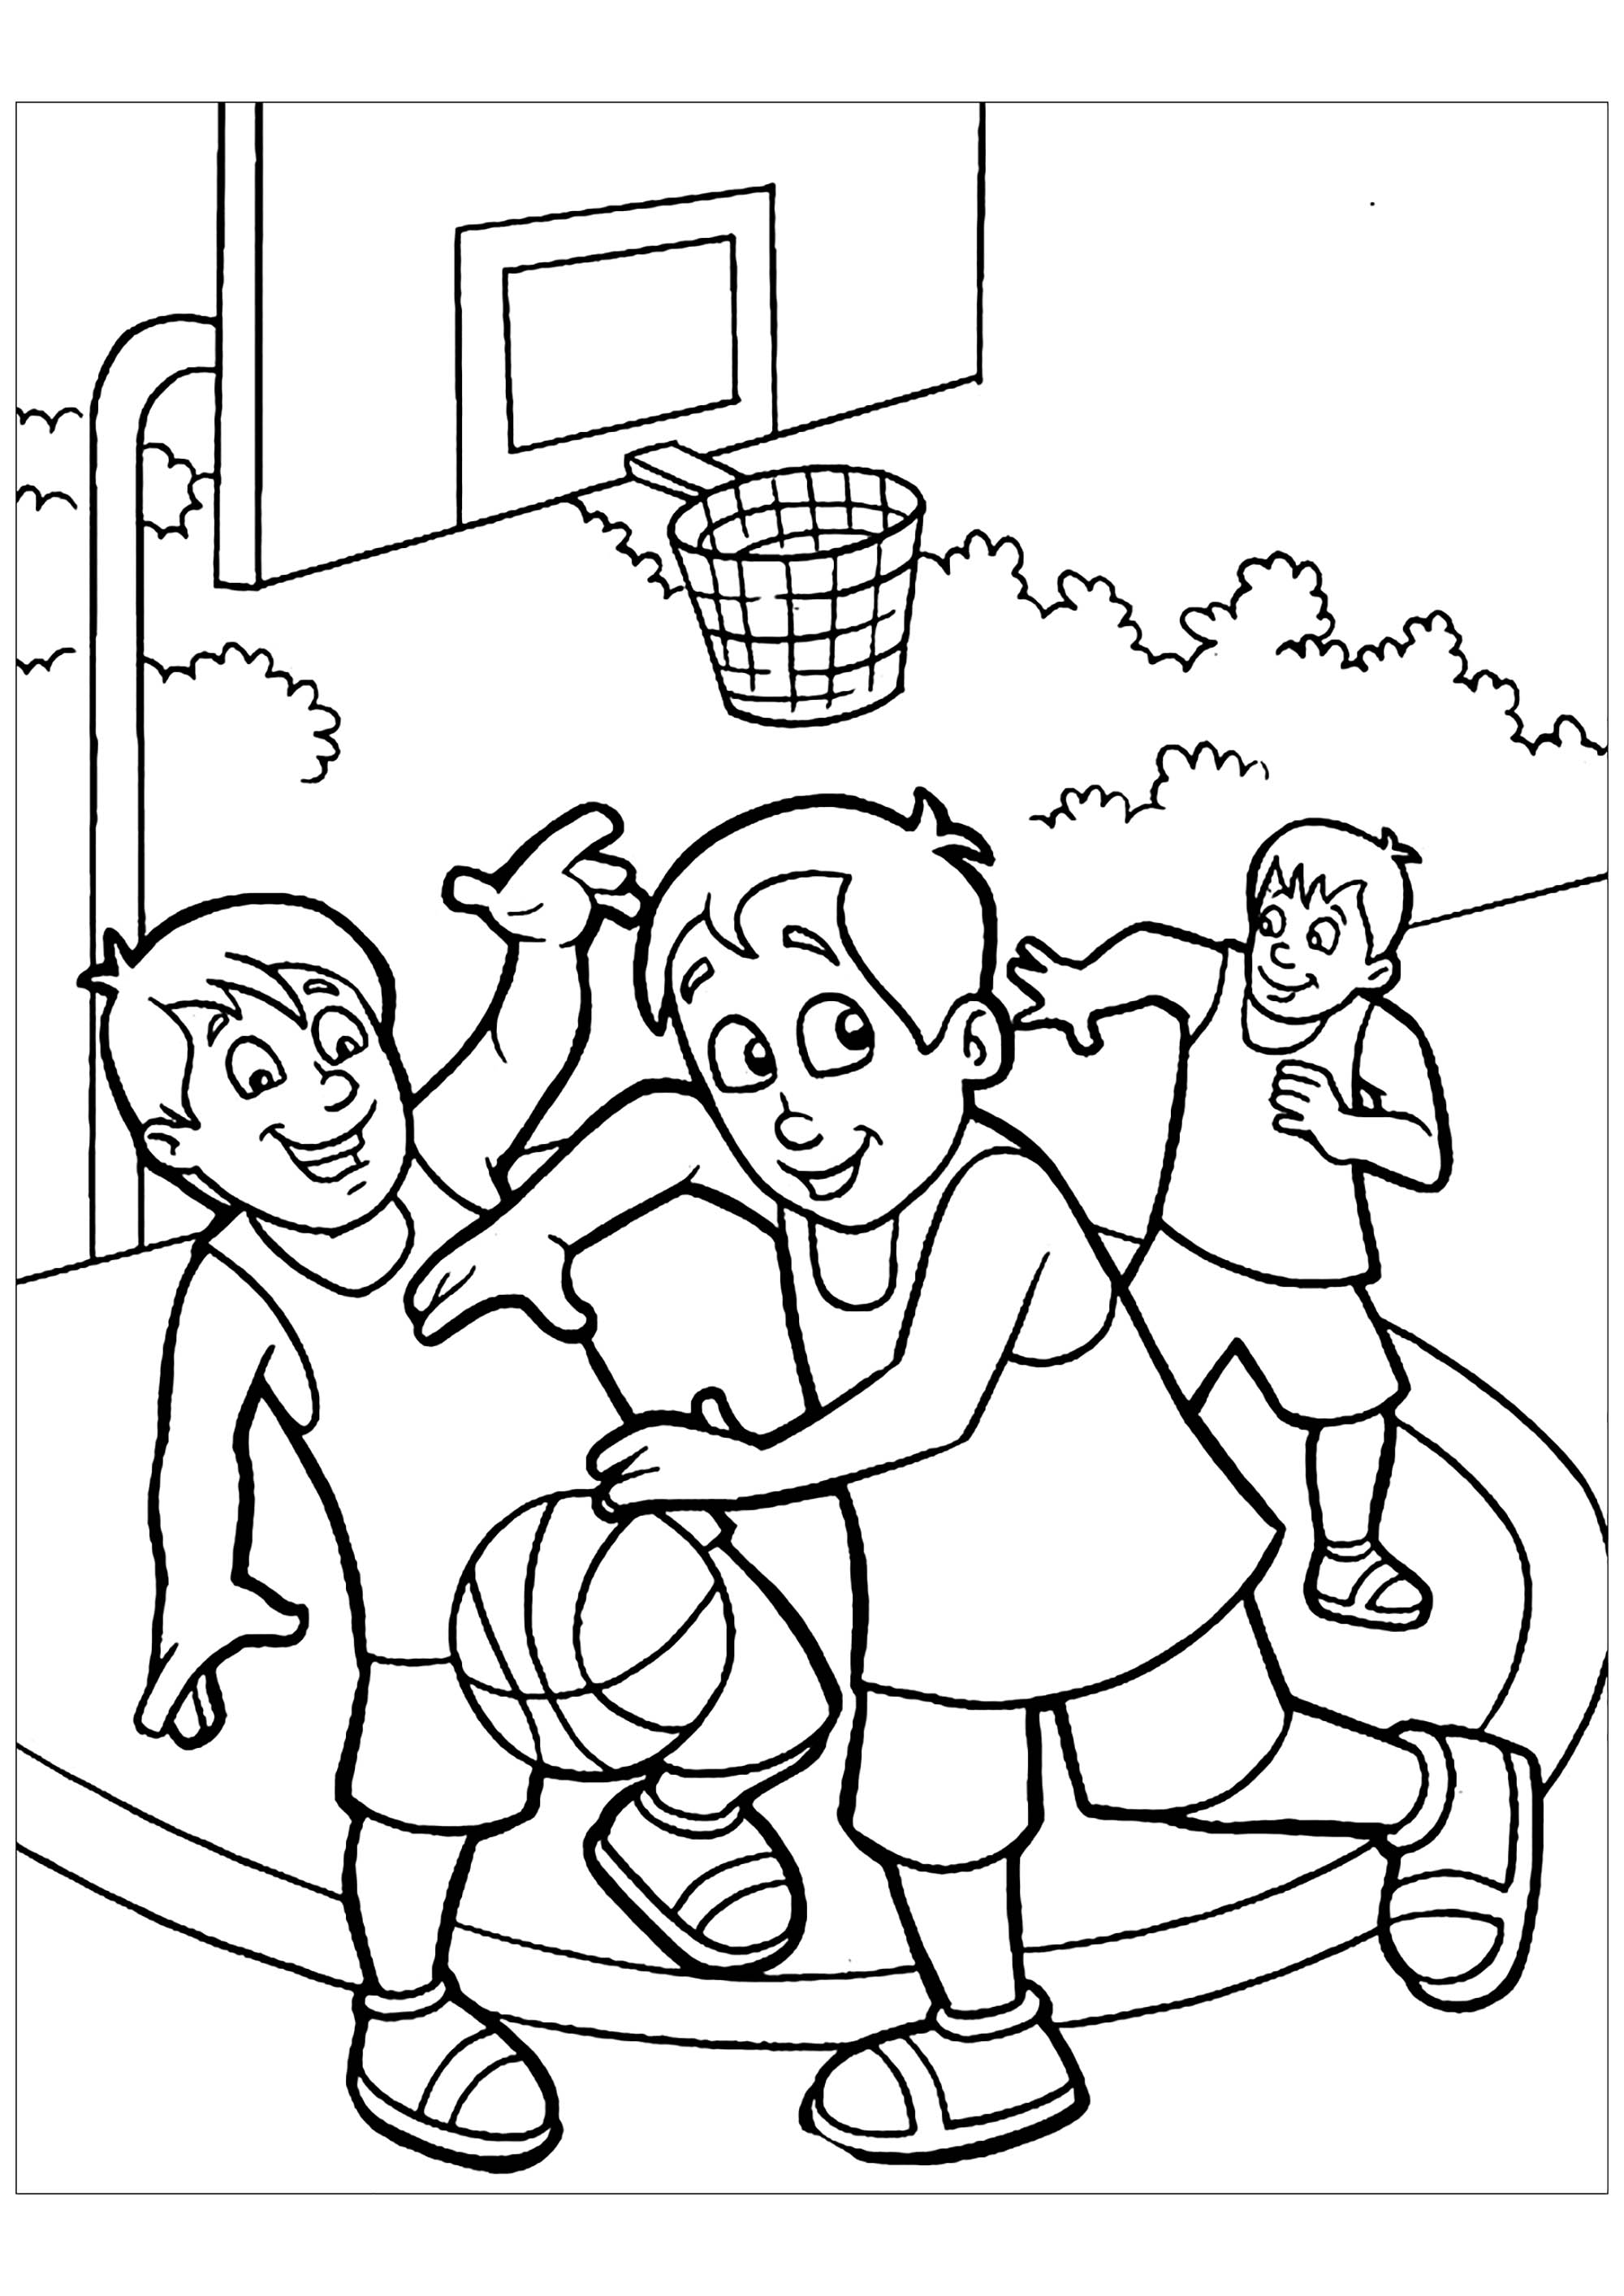 basketball pictures to color basketball coloring pages free download on clipartmag pictures color basketball to